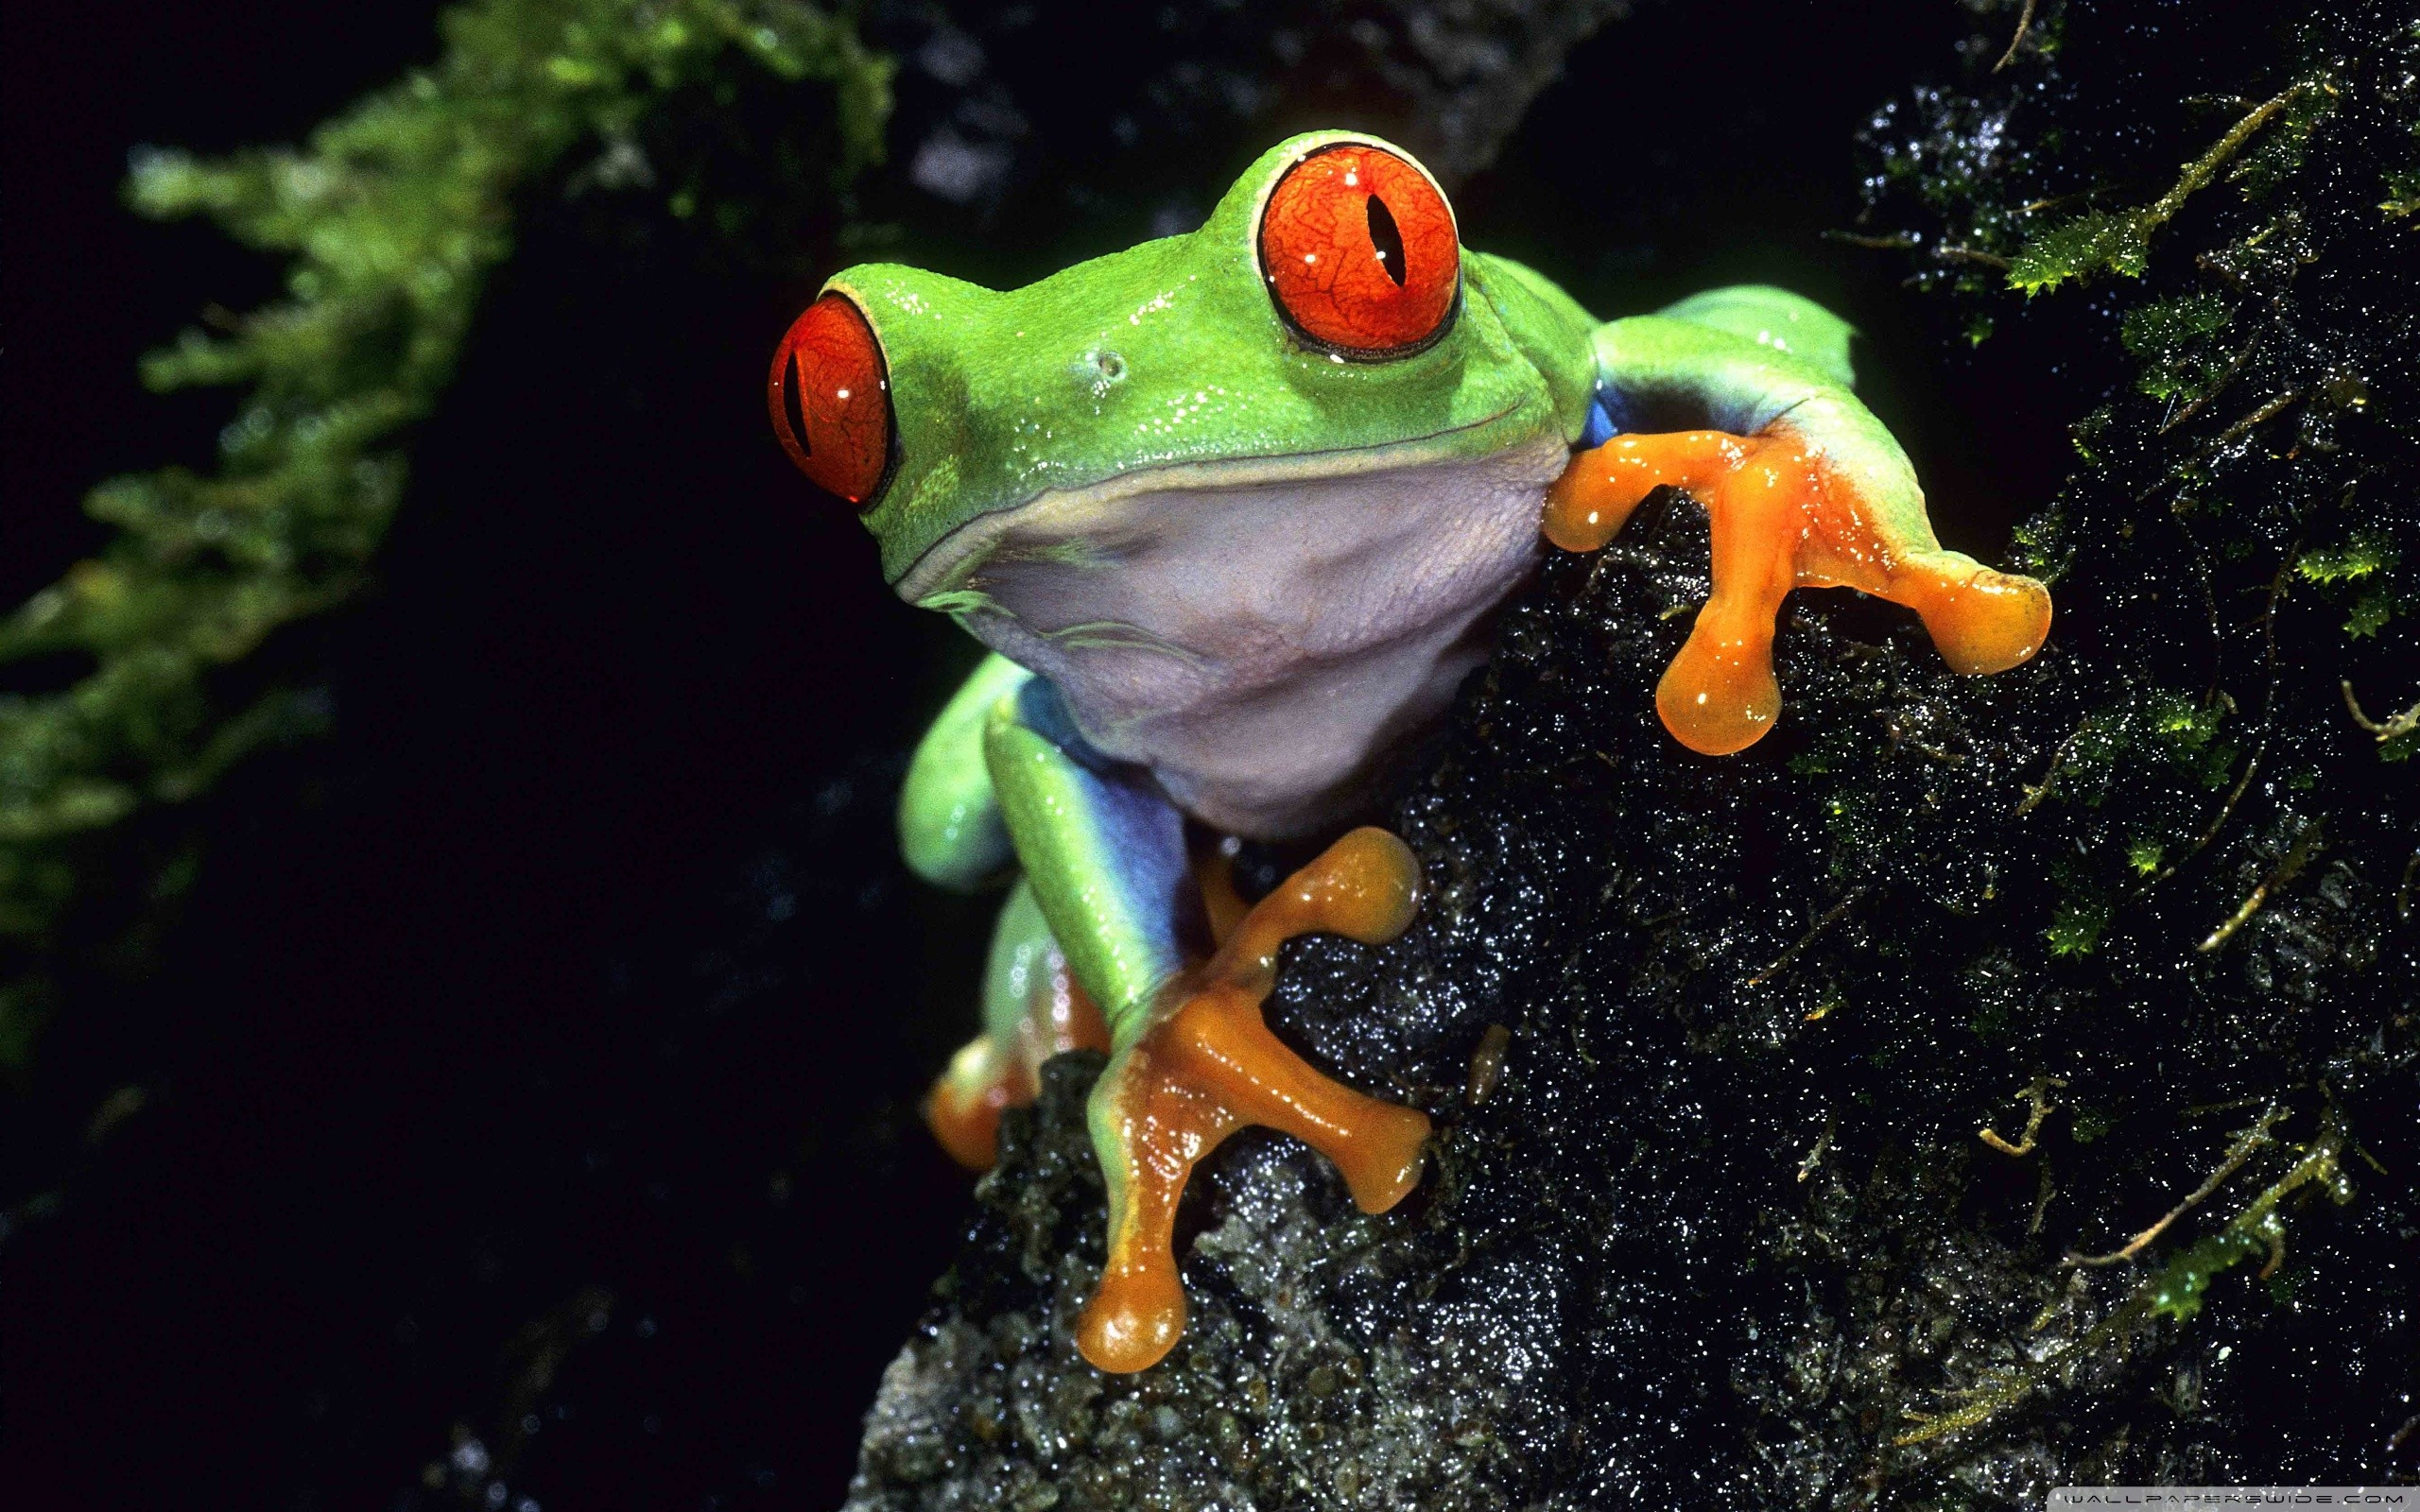 Res: 2560x1600, Cute tree frog wallpaper - stretch image in background html example